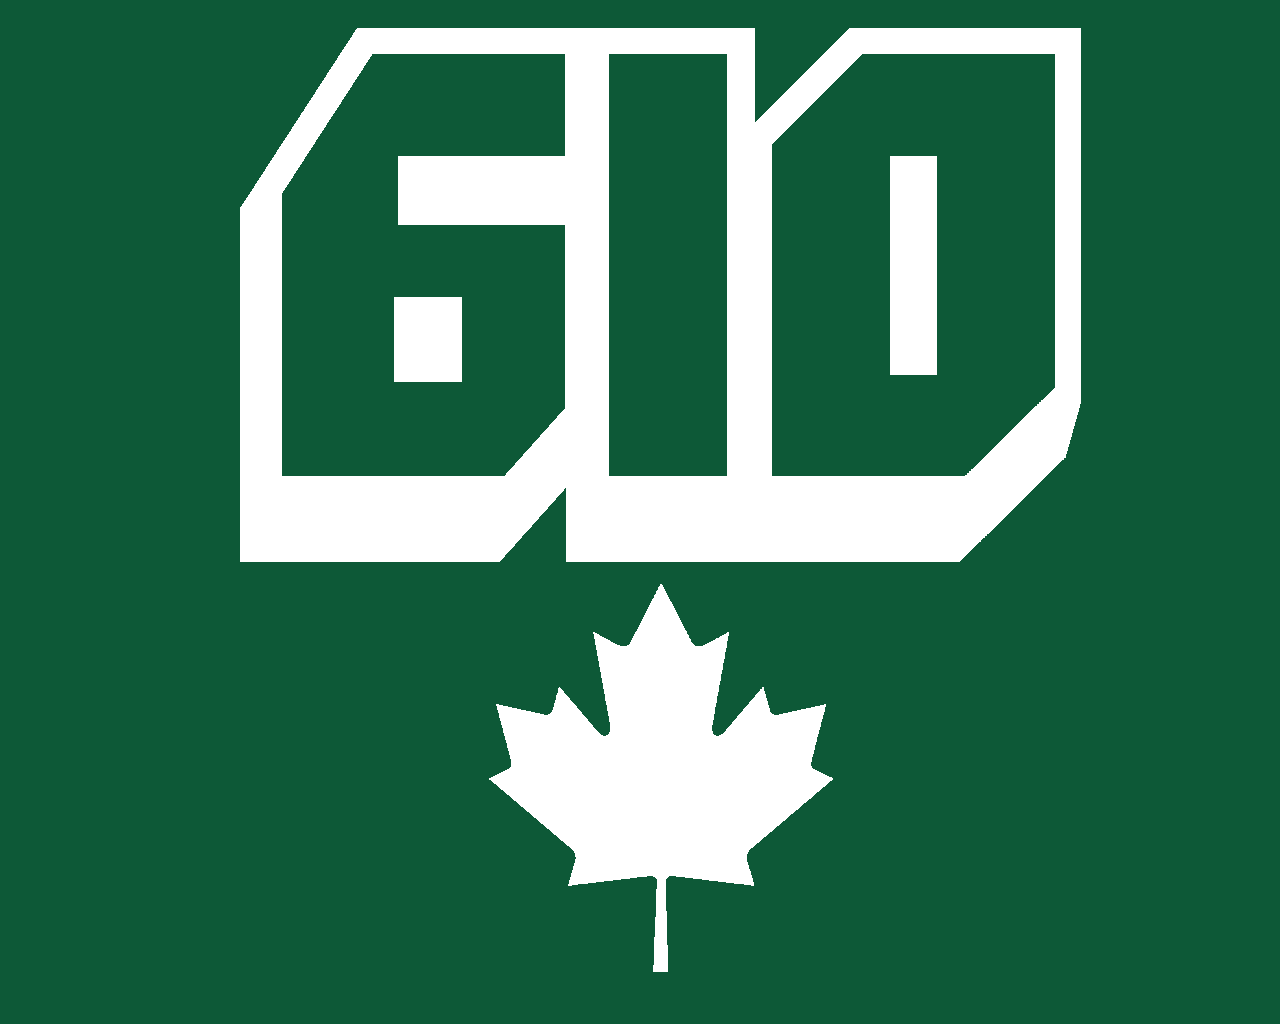 610-and-maple-leaf_inverse